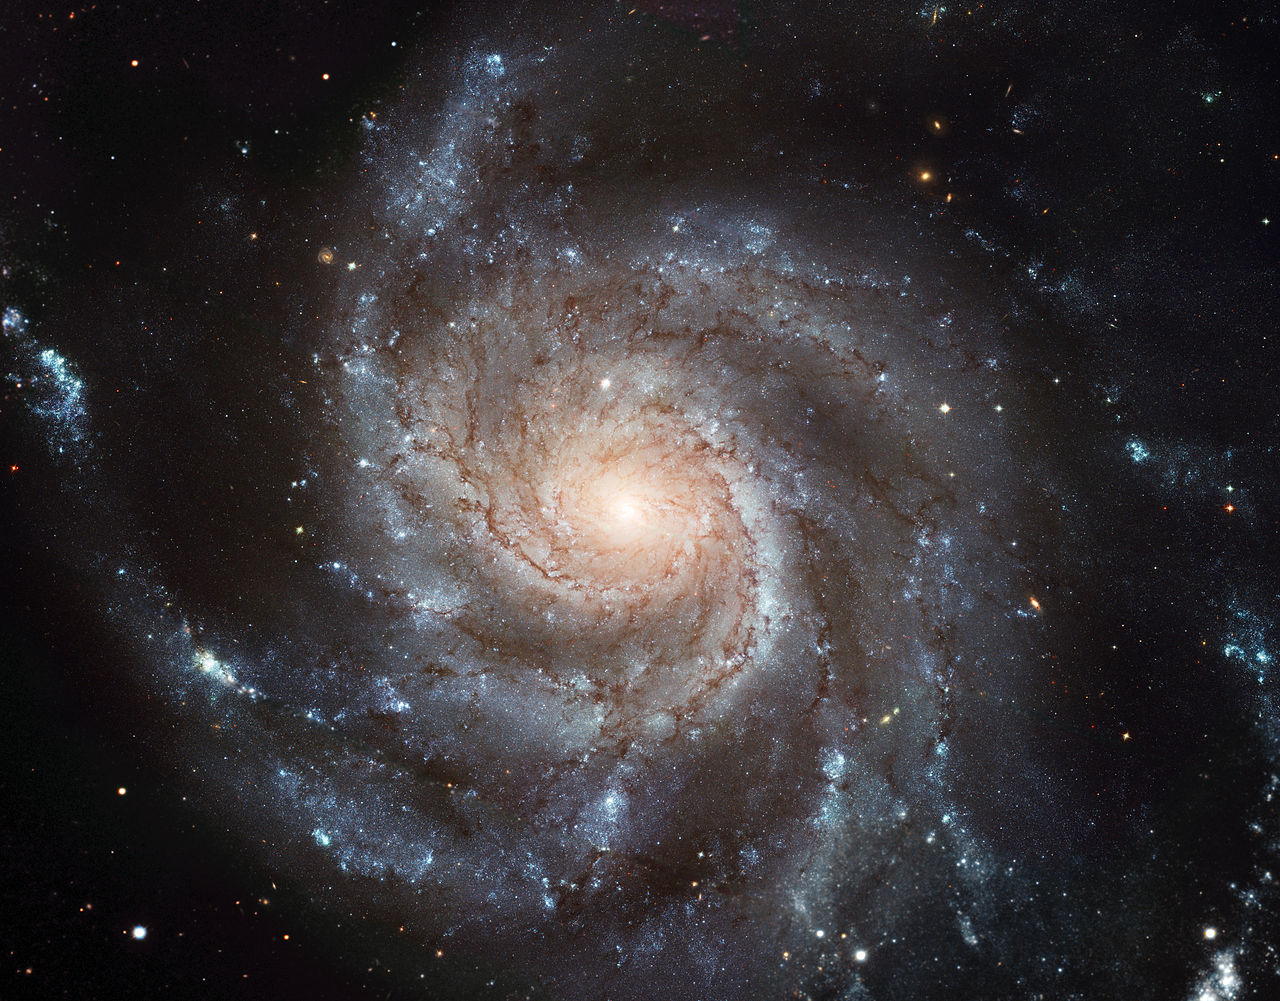 Hubble Space Telescope view of Messier 101